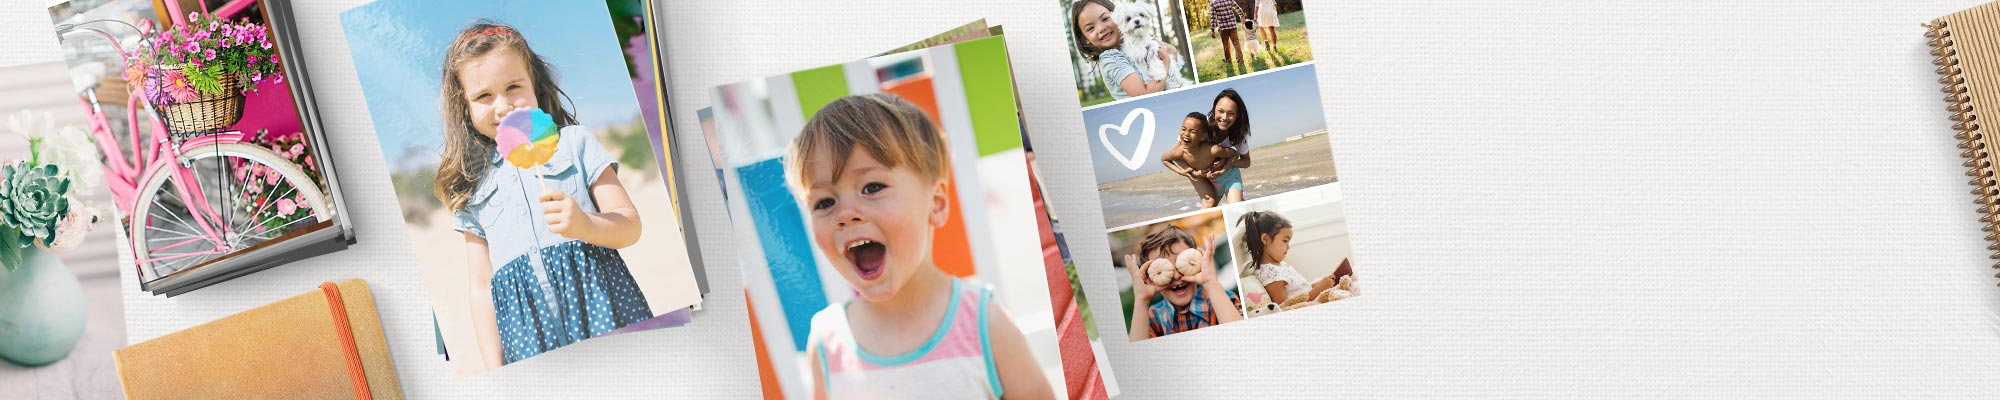 Photo prints : Great moments you can hold onto, literally.Share them, save them and cherish them.